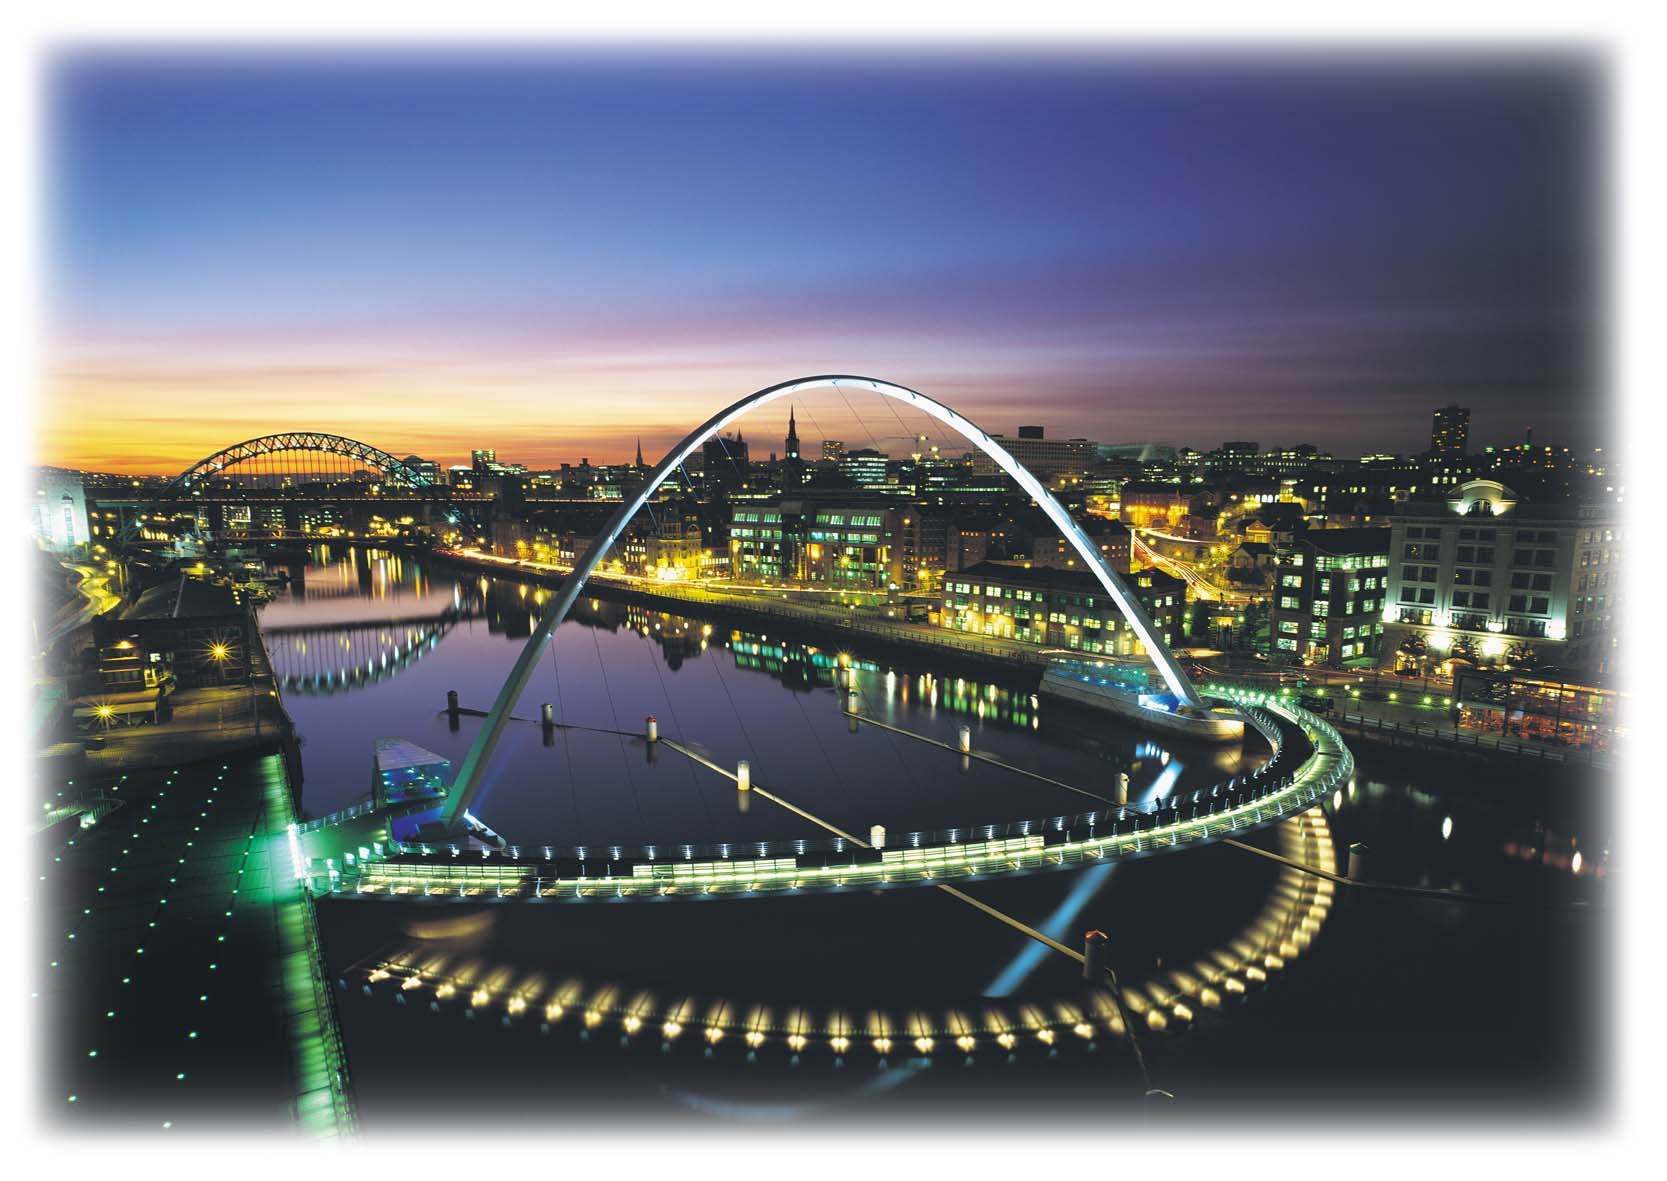 Gateshead Millennium Bridge Ramboll Group